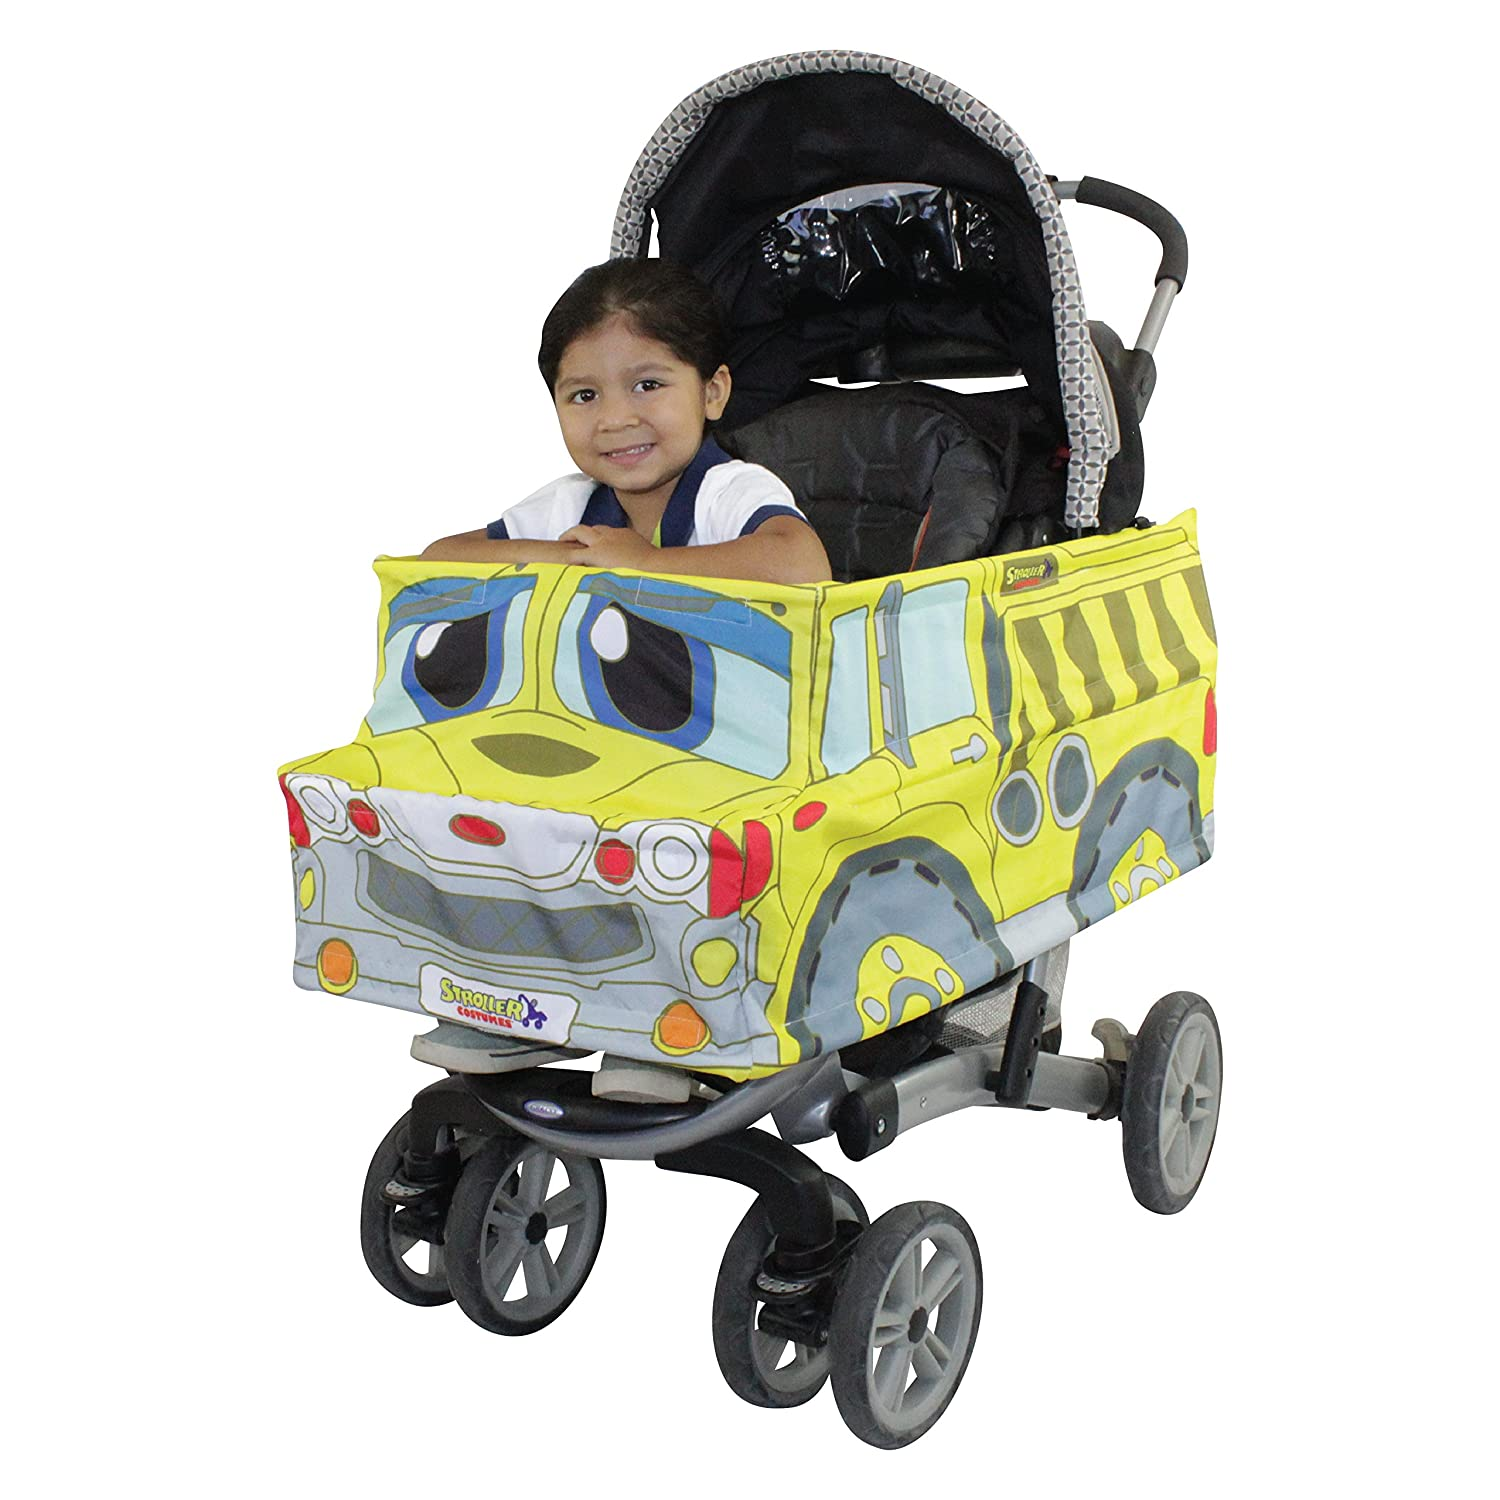 Dump Truck Stroller Costume Turns Stroller Into A Baby, Toddler Ride On Car Toy Two Monkeyz